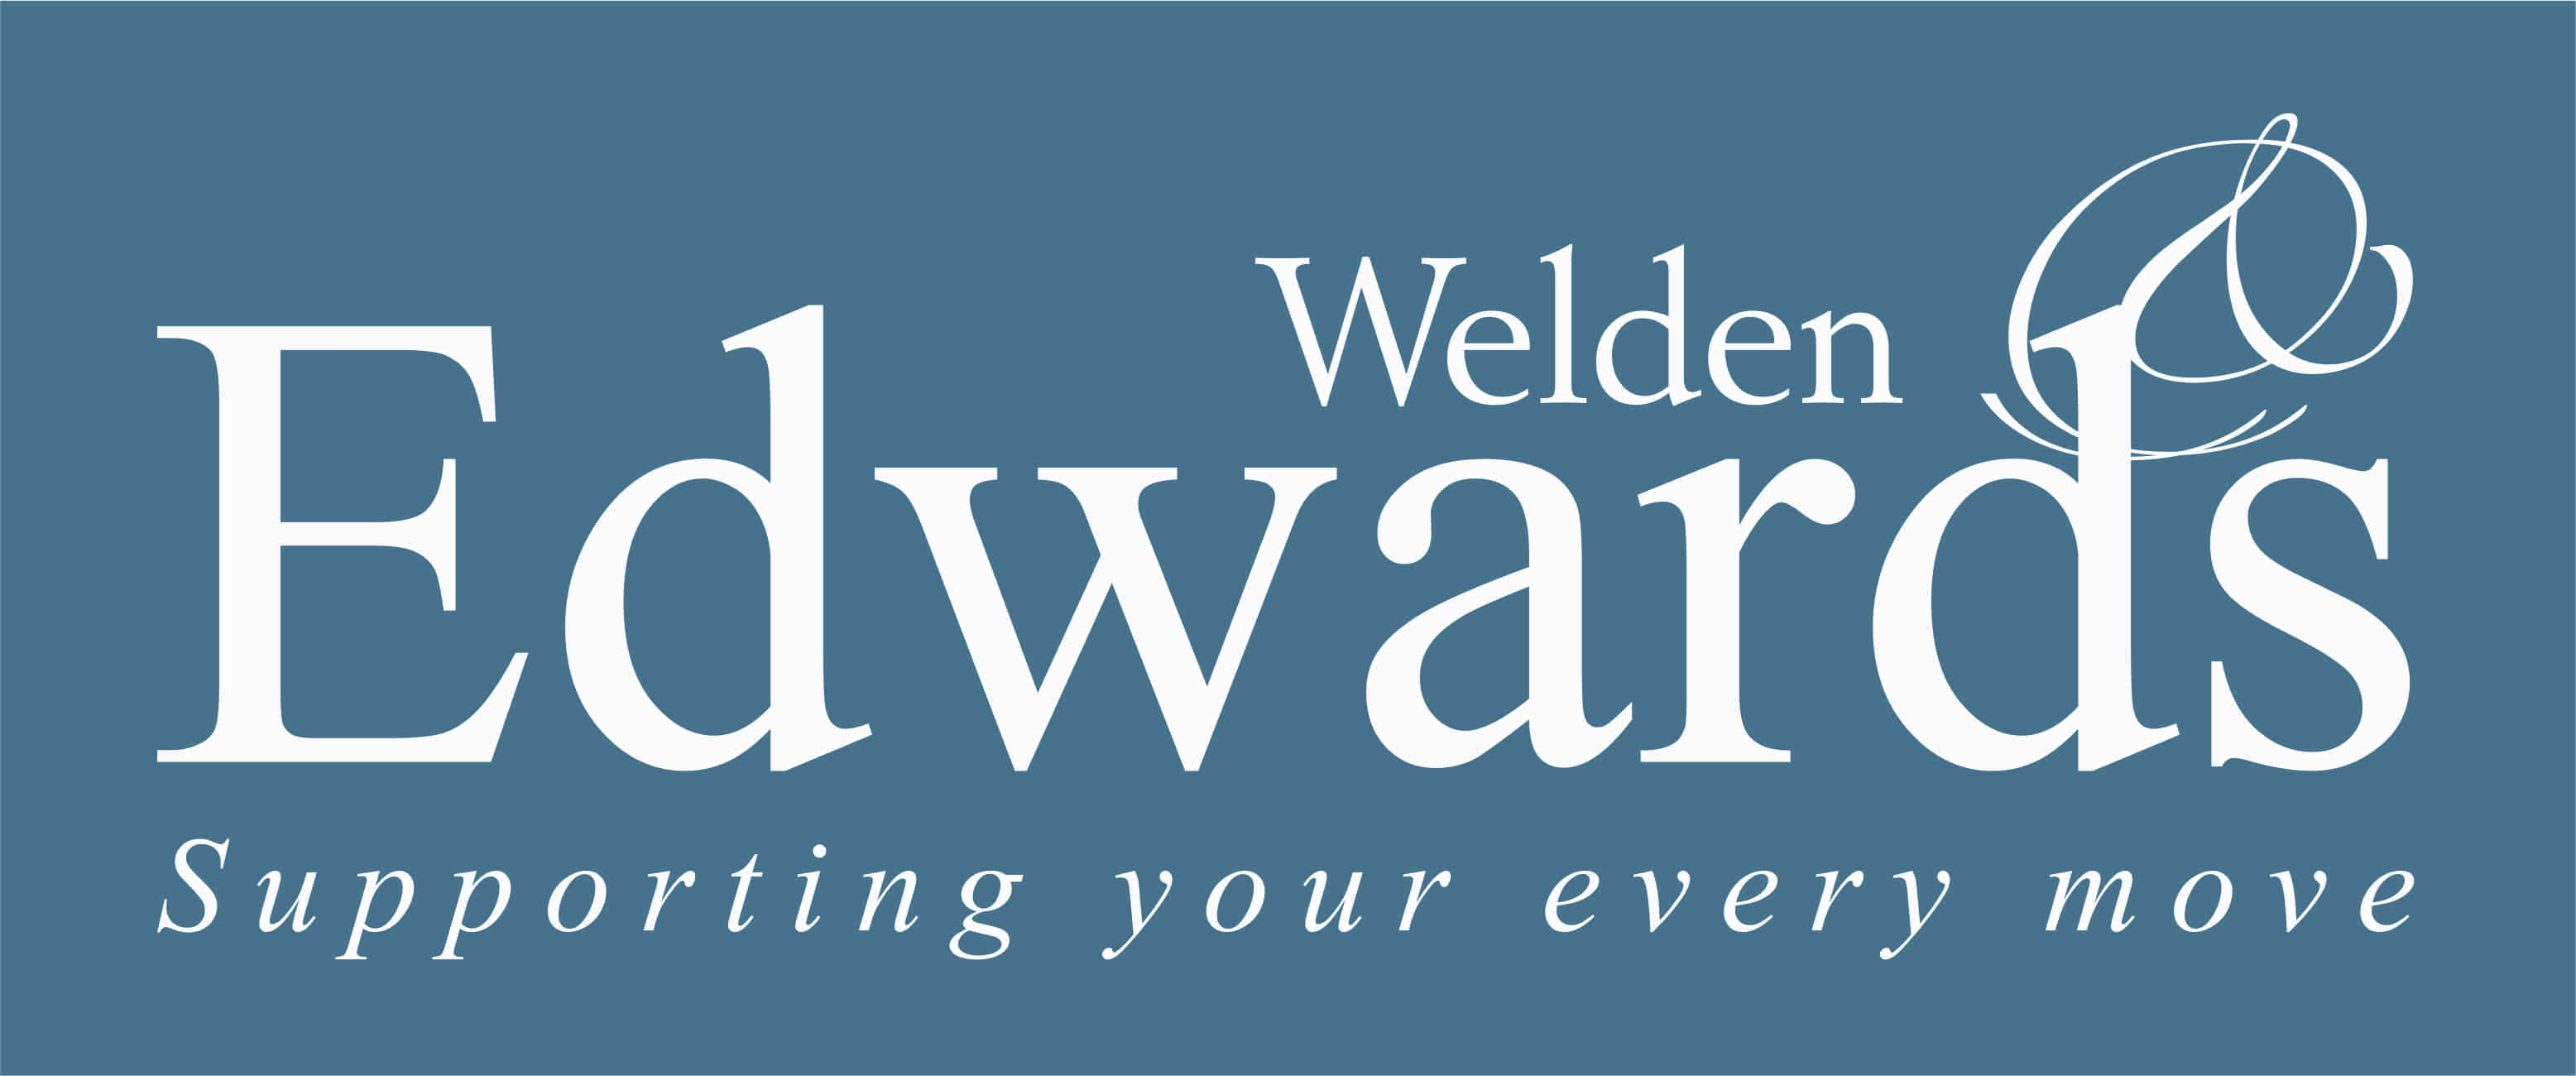 Welden & Edwards